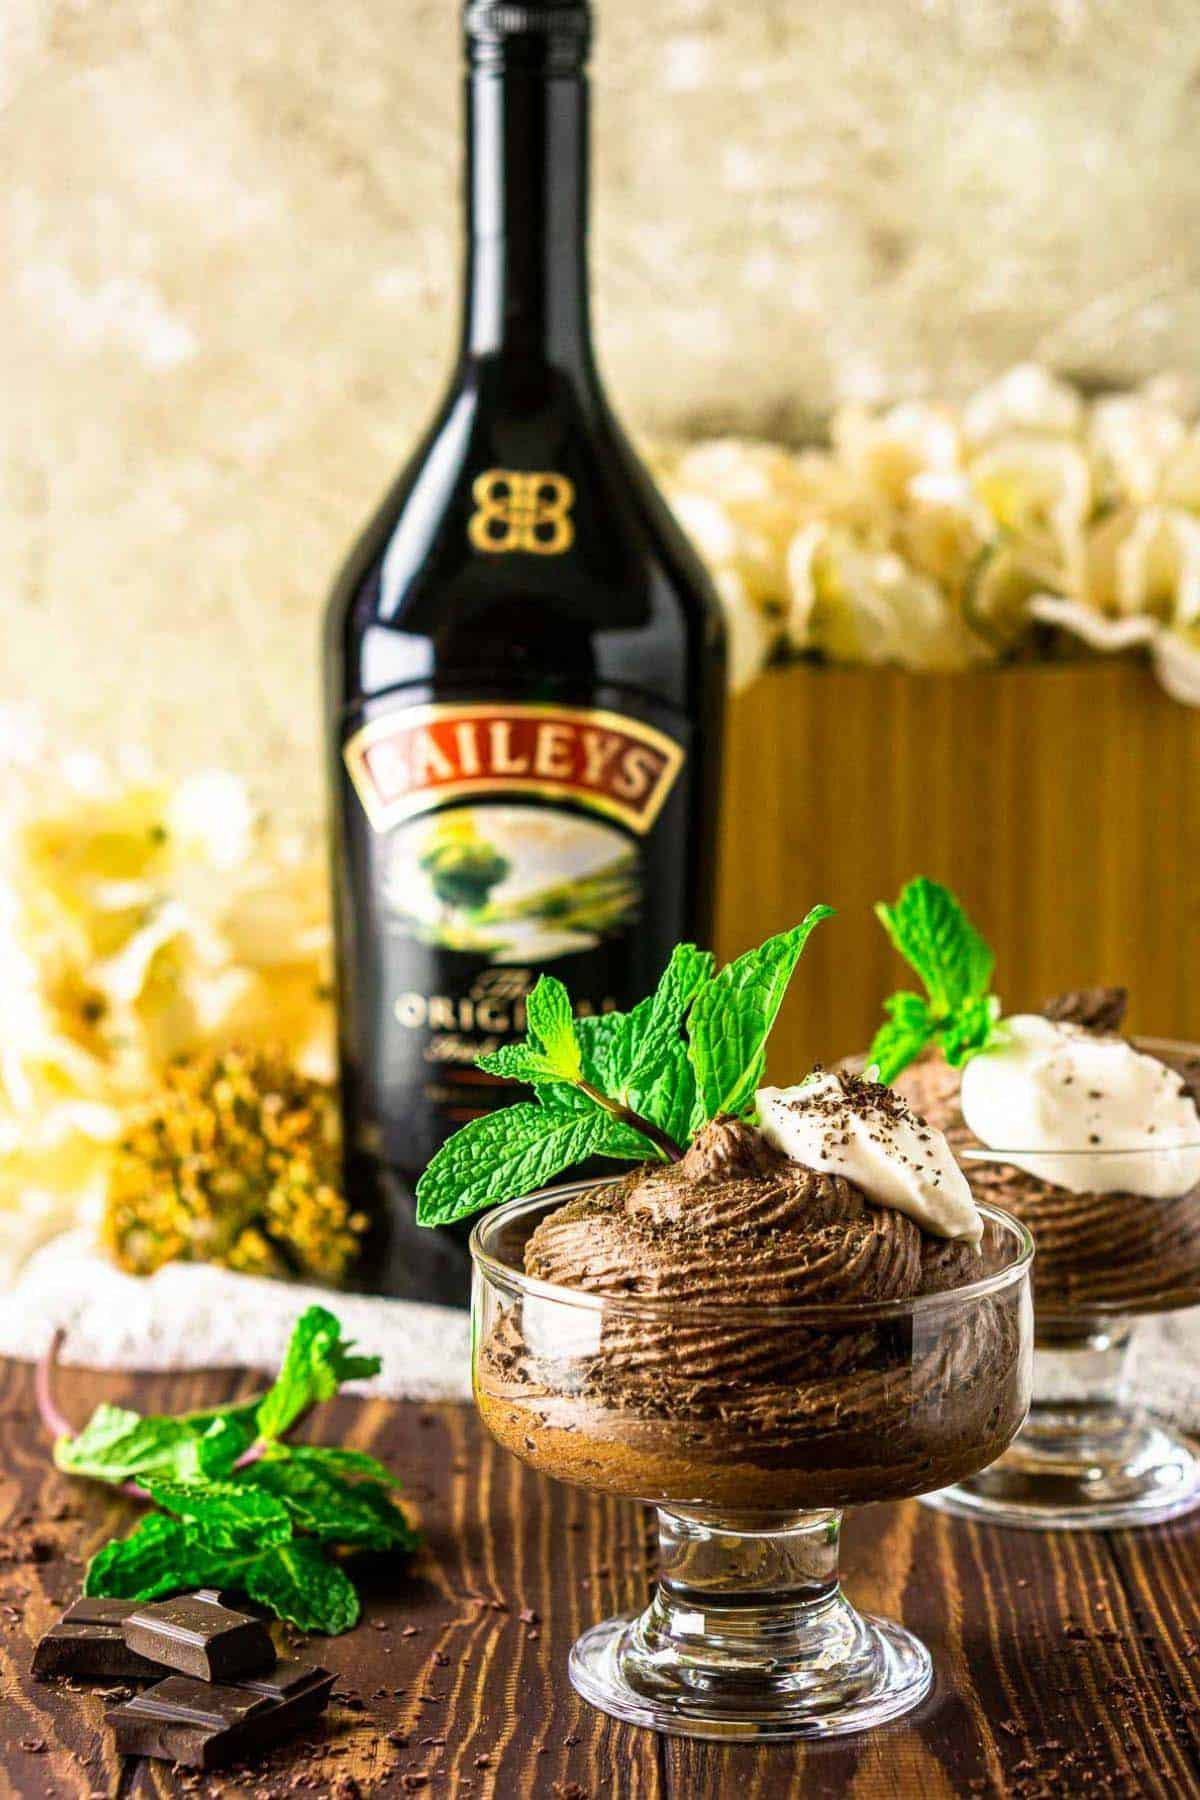 The Baileys mousse with a bottle of Irish cream and white flowers behind it on a wooden board.